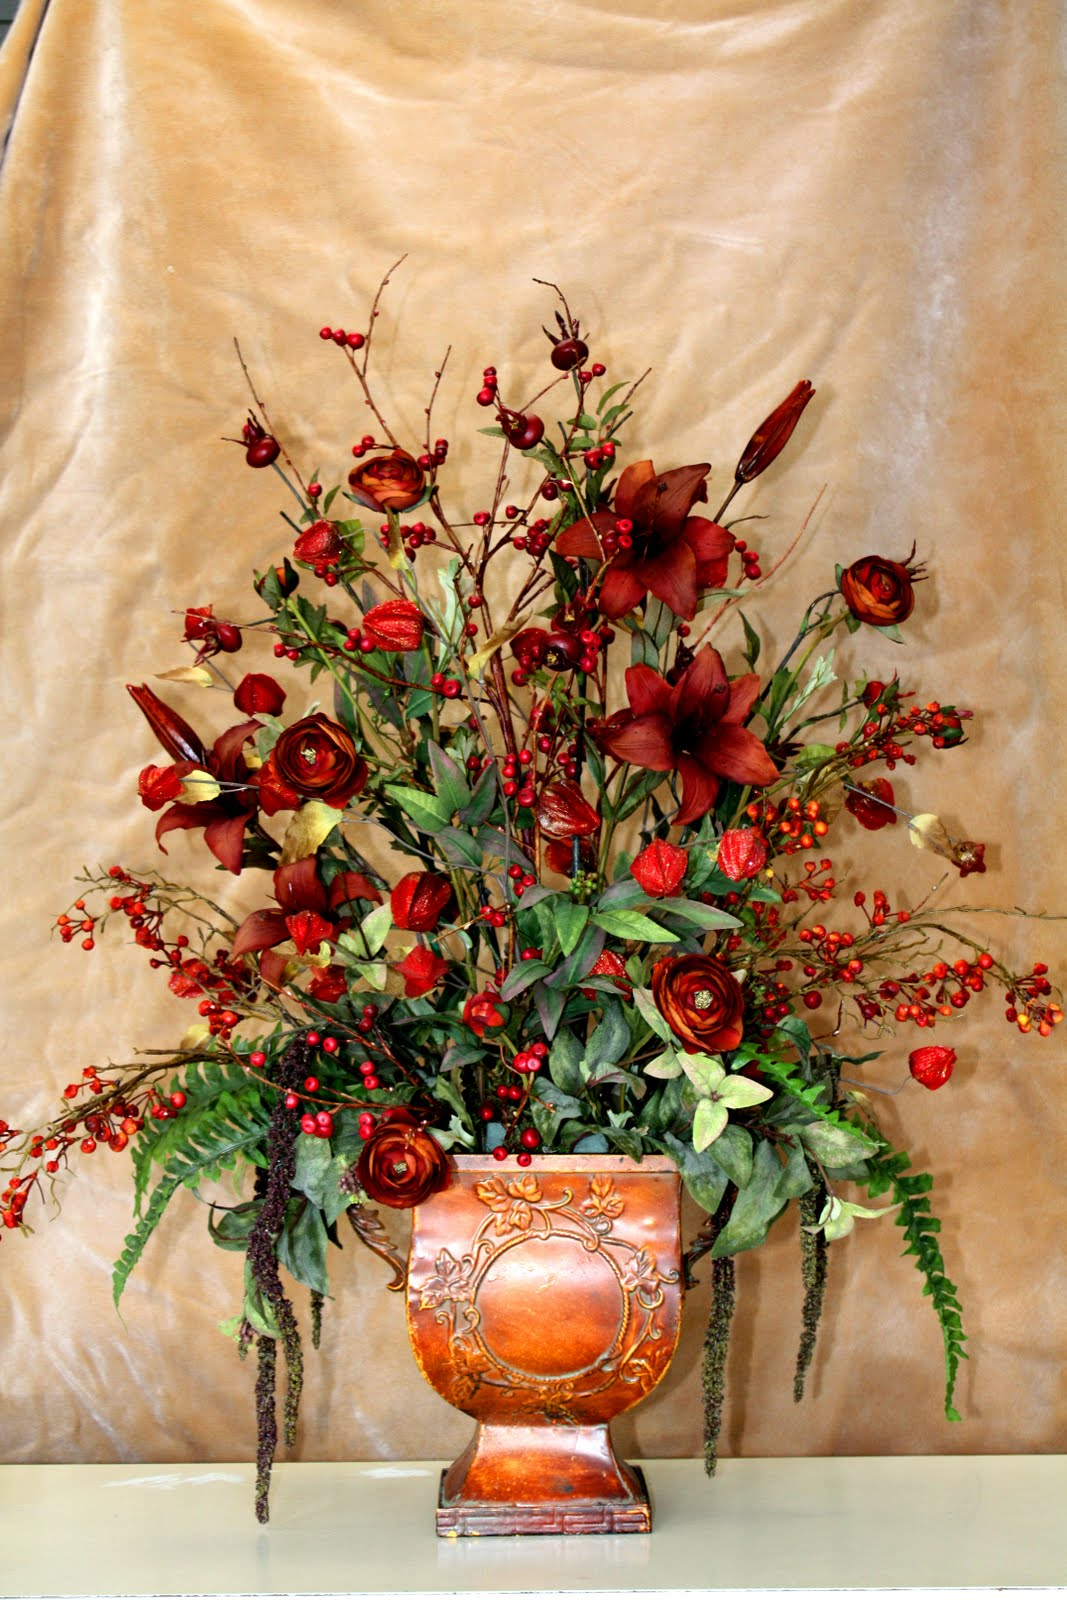 Blackfoot gifts bazaar home decor floral arrangements for Floral decorations for home